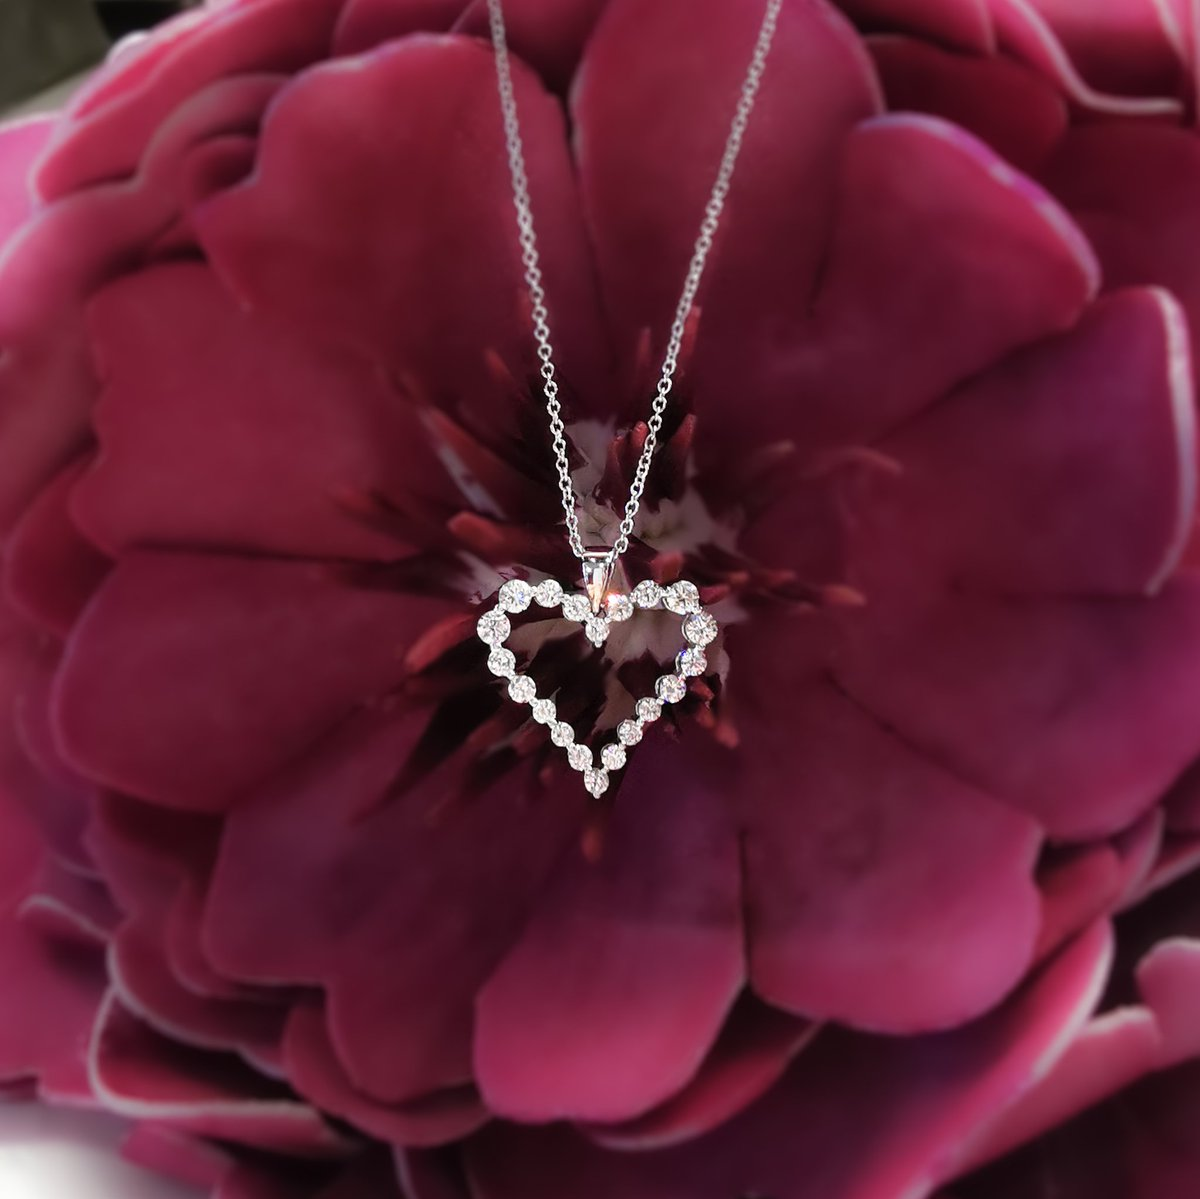 """Happy Valentine's Day! We love being part of those special moments where you say """"I Love You"""" with diamonds! There is still time to bring home a little something to your special #valentine in #happyvalentinesday❤️  #diamonds #ValentinesDay #heartpendant #diamondnecklace"""